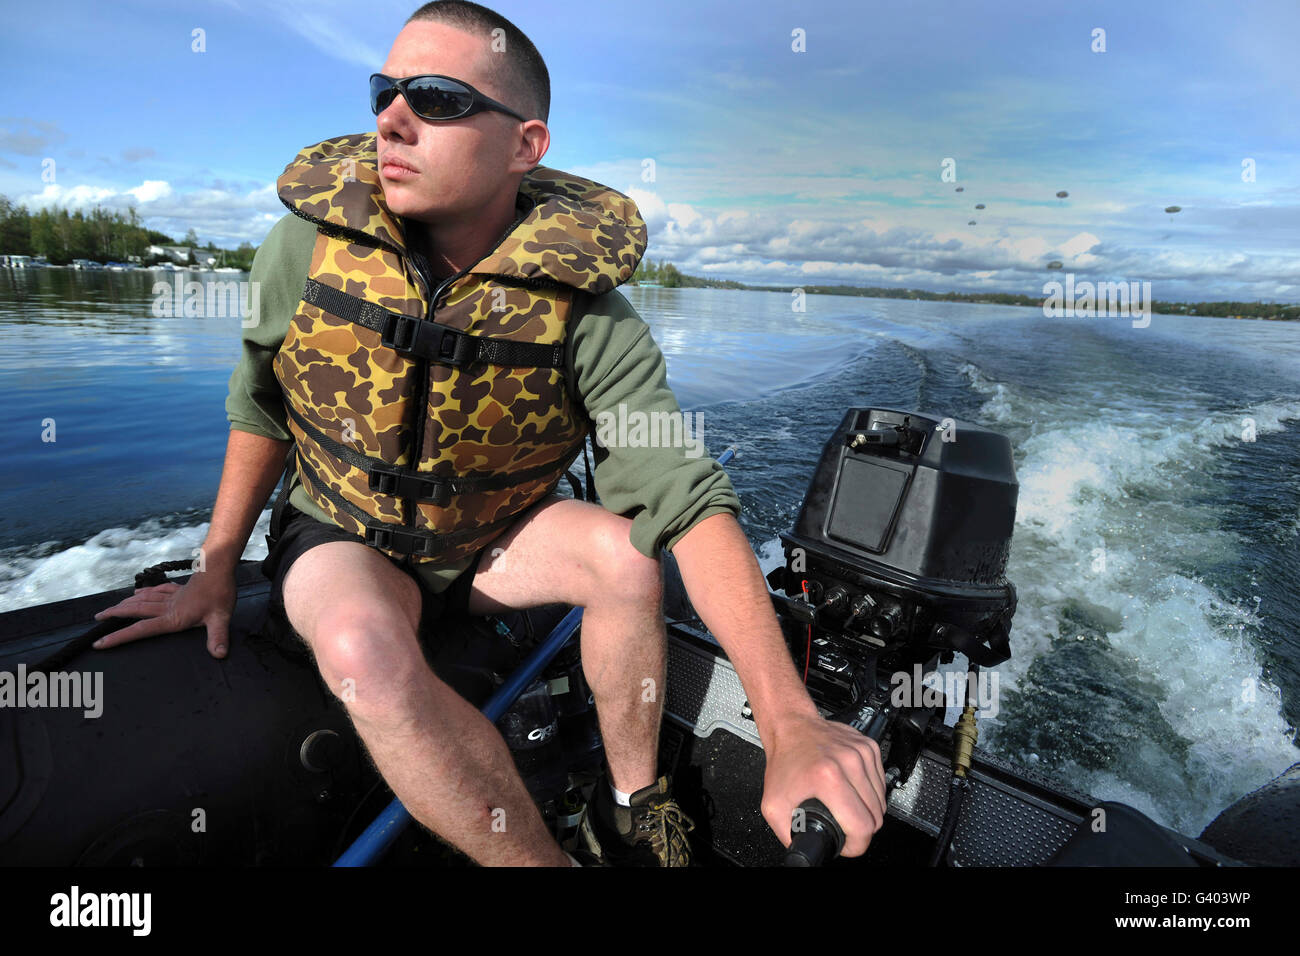 U.S. Army Soldier pilots a Zodiac boat in Big Lake, Alaska. - Stock Image